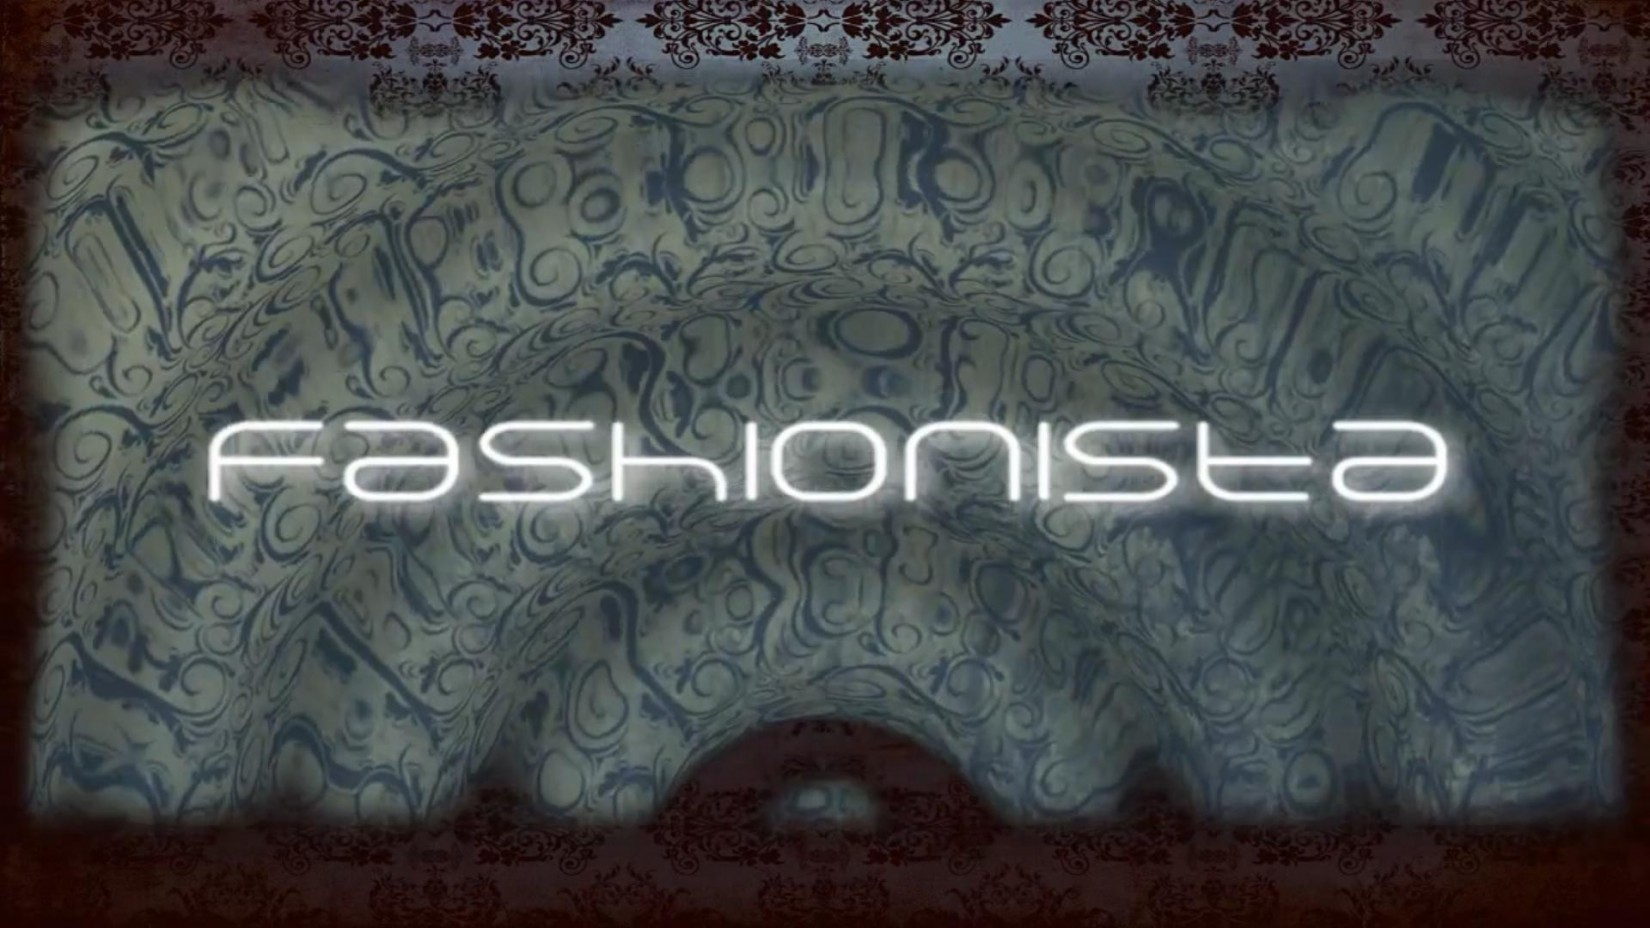 Fashionista Font - Can somebody Identify